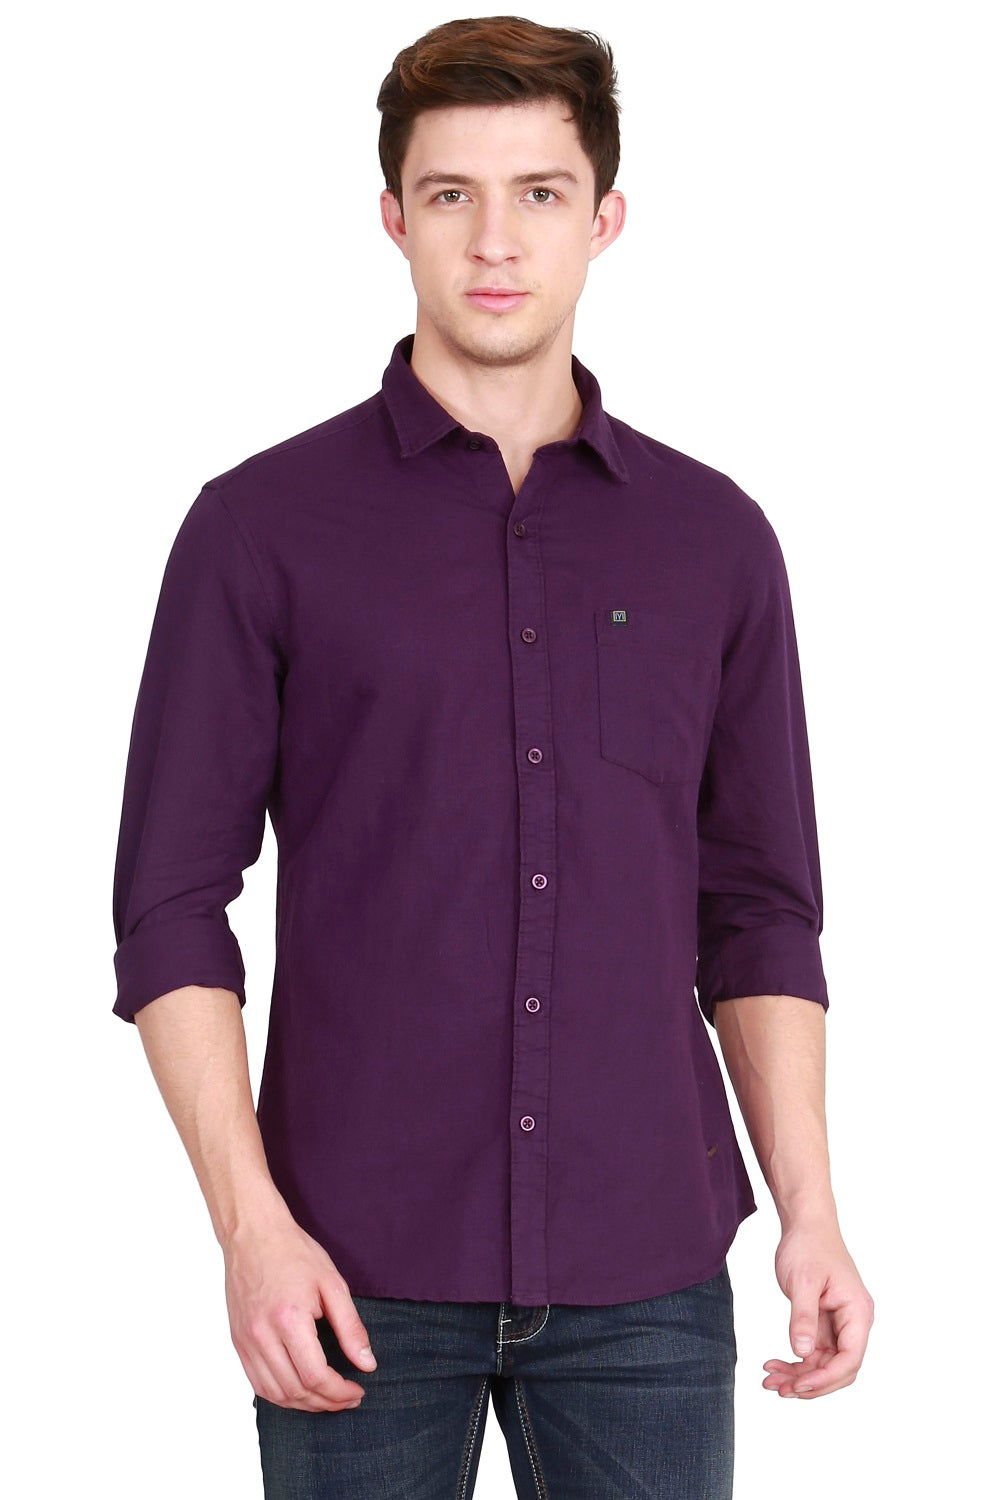 IMYOUNG Men's Solid Purple Cotton Linen Casual Shirt